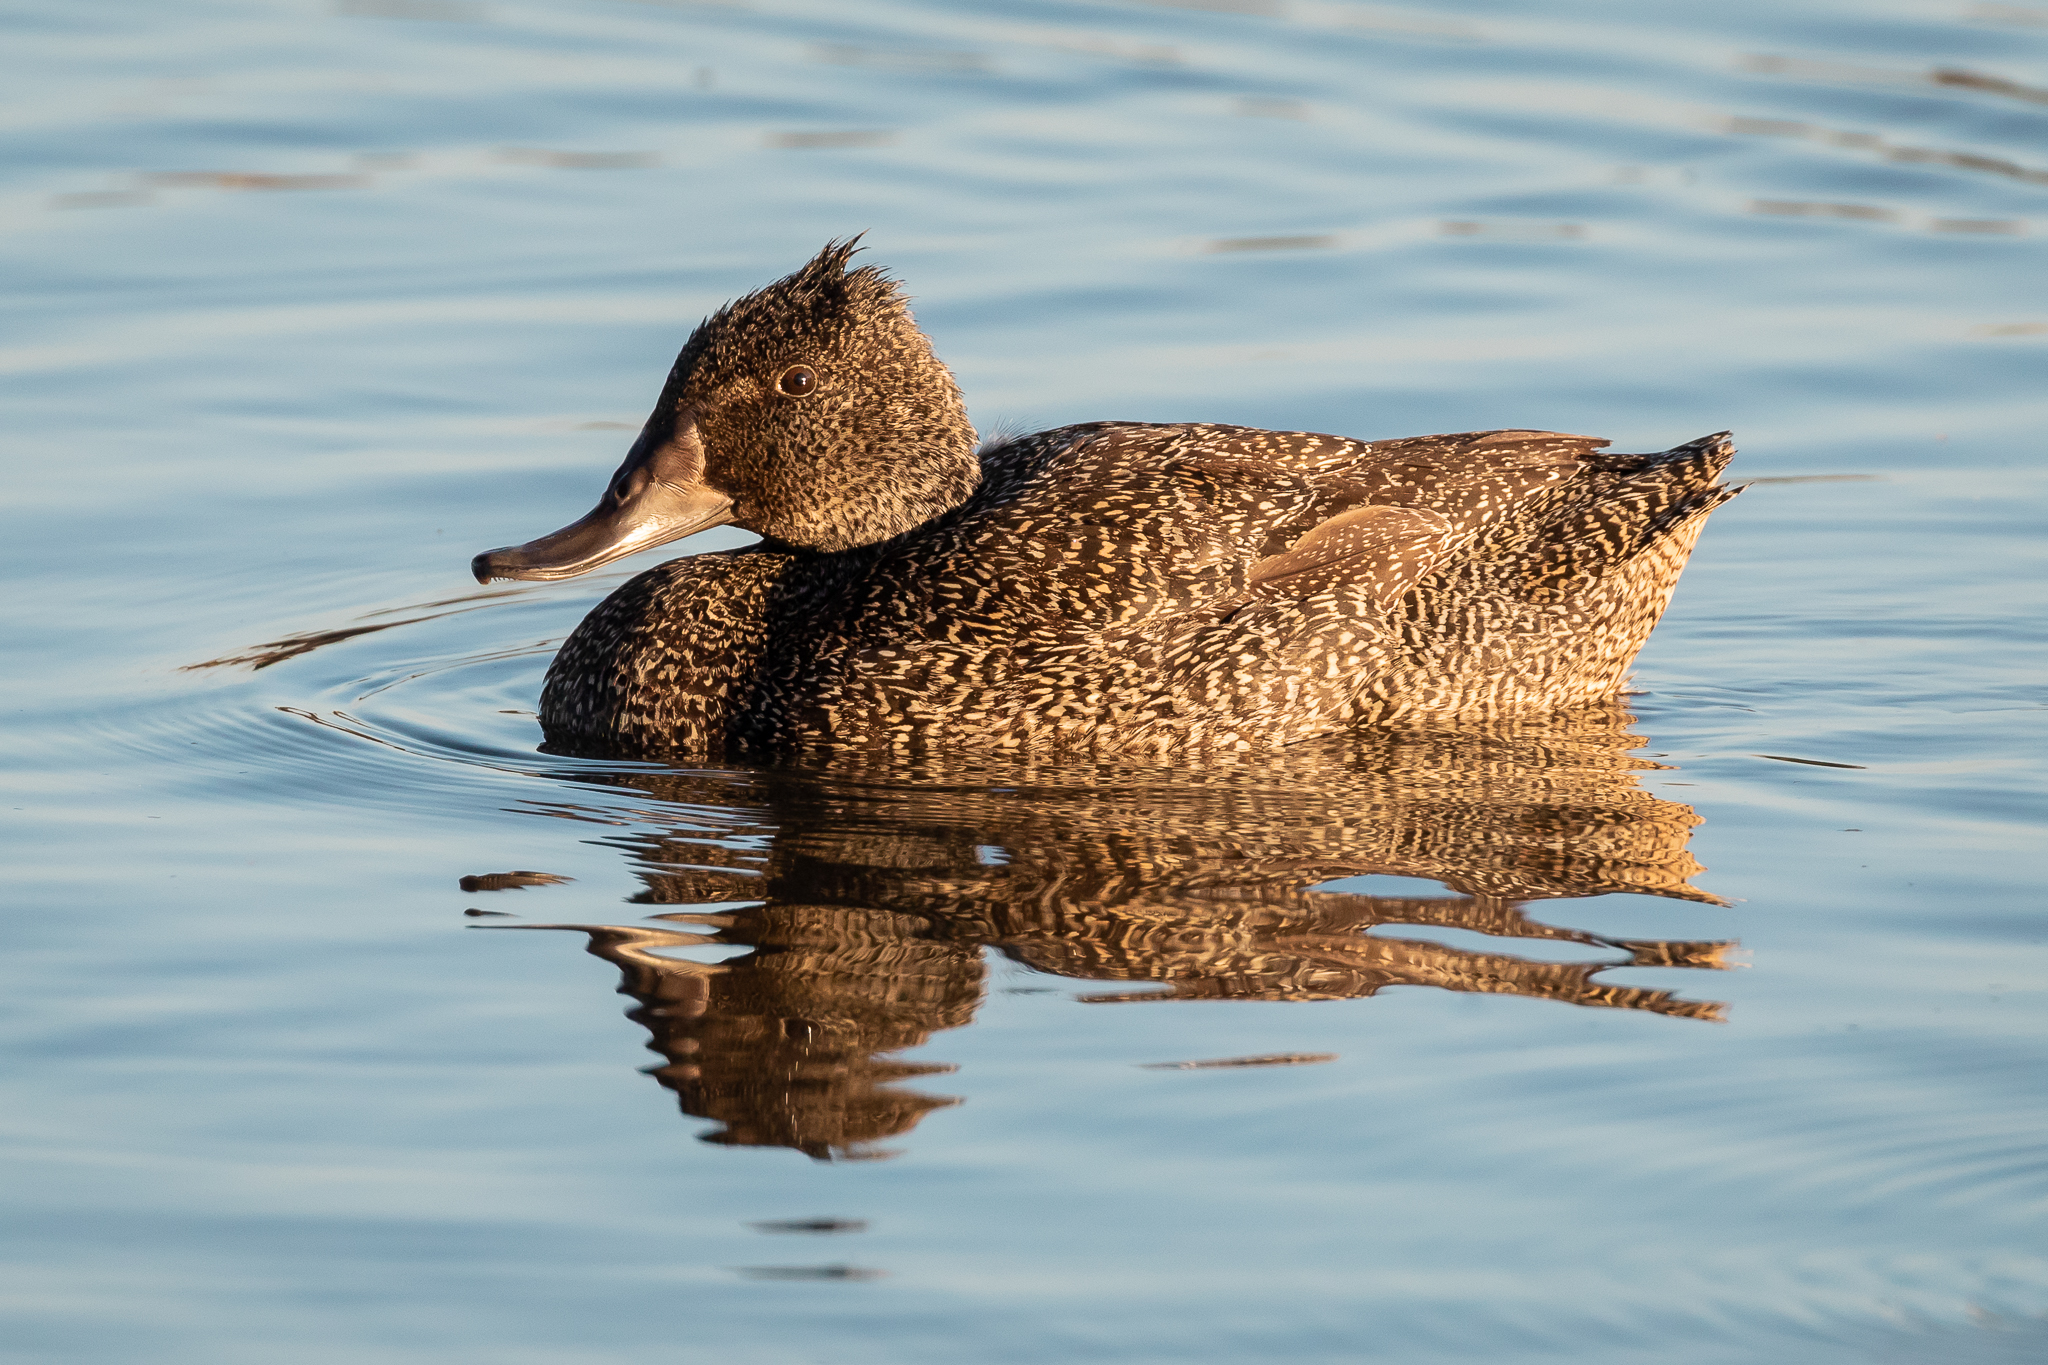 The Freckled-Duck (59 cm) is seen in the swamps and creeks of mid-Victoria and NSW, feeding on vegetation, algae and seeds. A rare and endangered species.